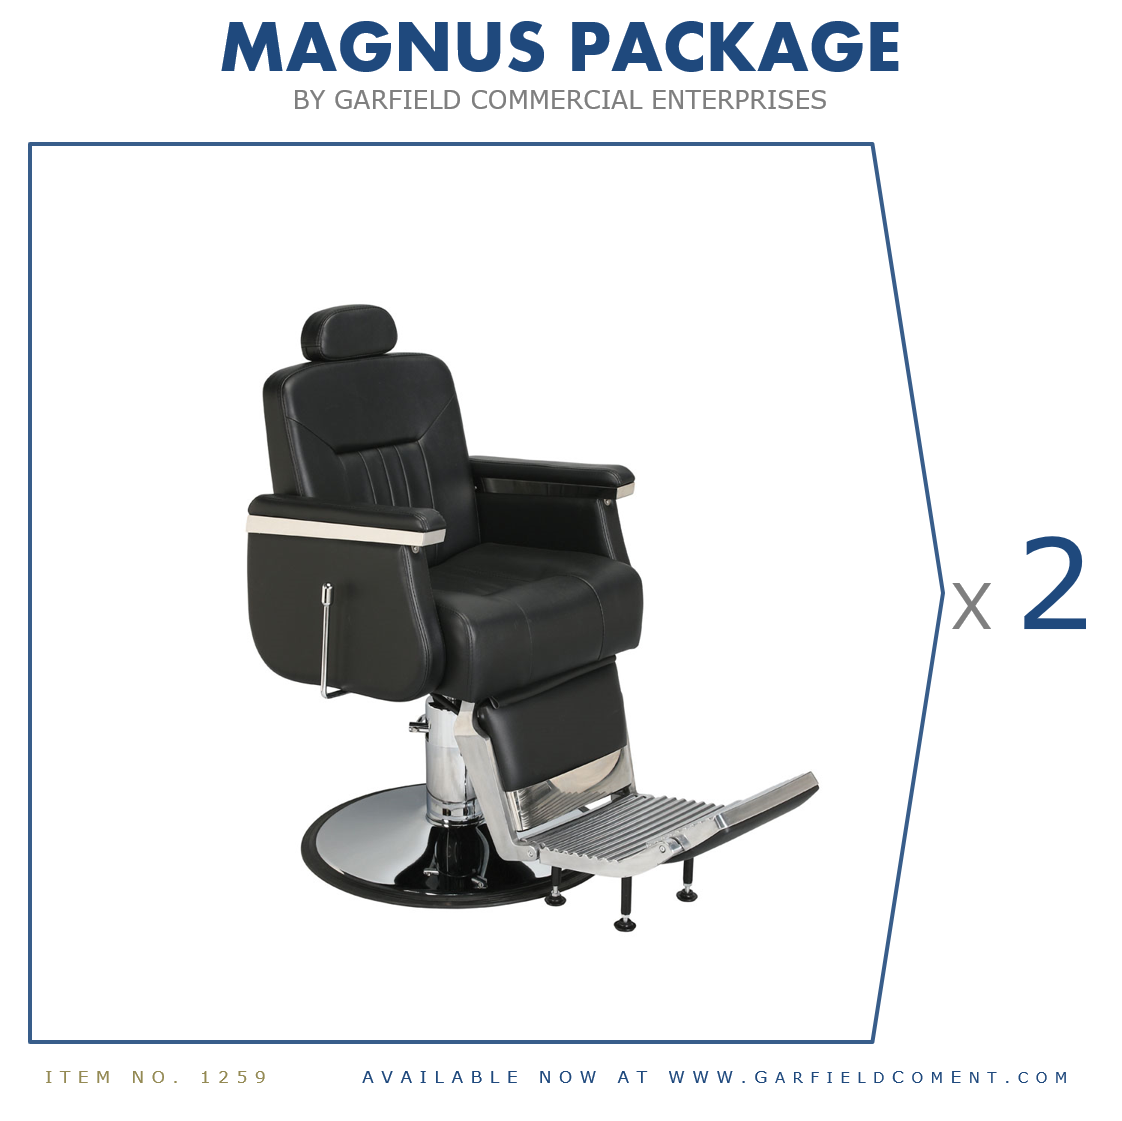 Magnus Barber Package